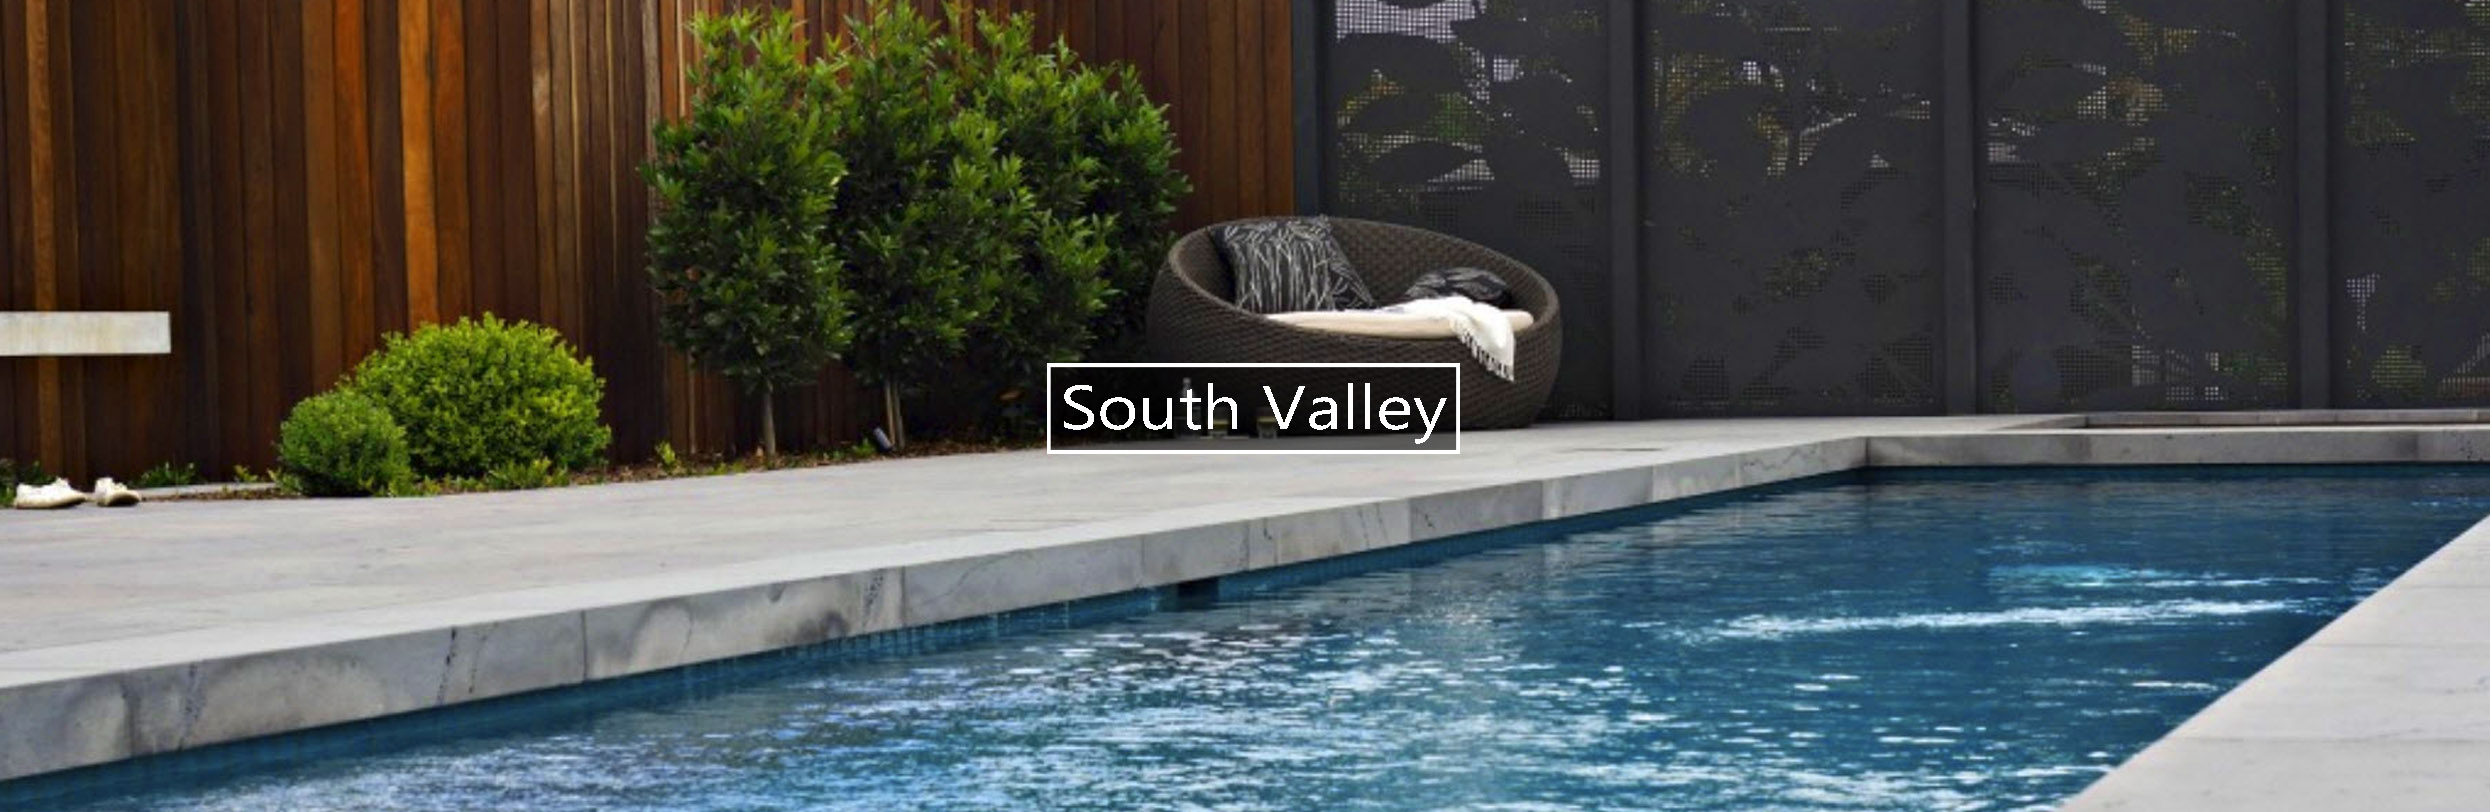 South Valley - Kiama Pools Swimming Pool Project